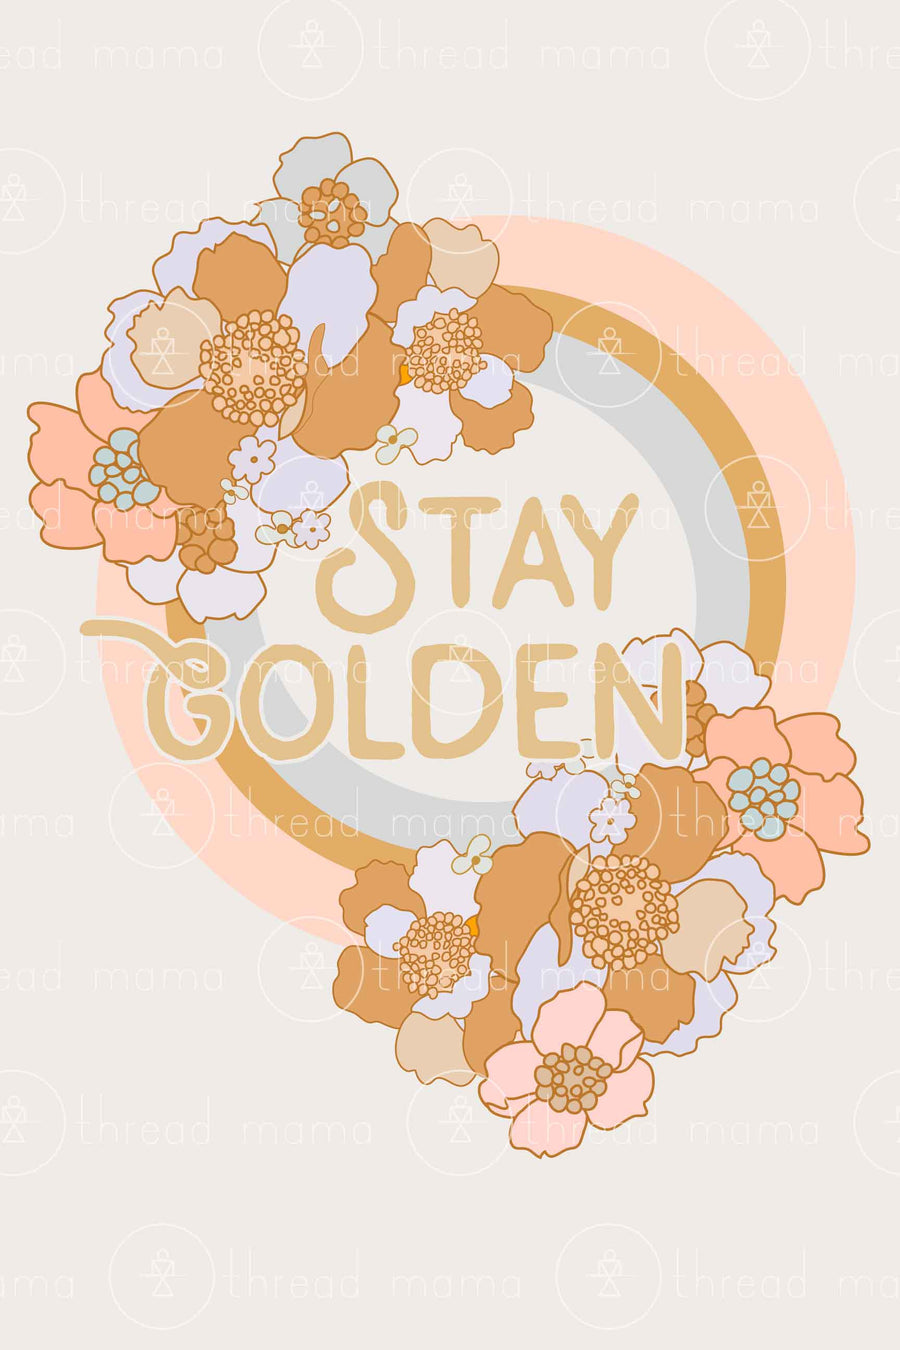 Stay Golden - 2 colors included (Printable Poster)